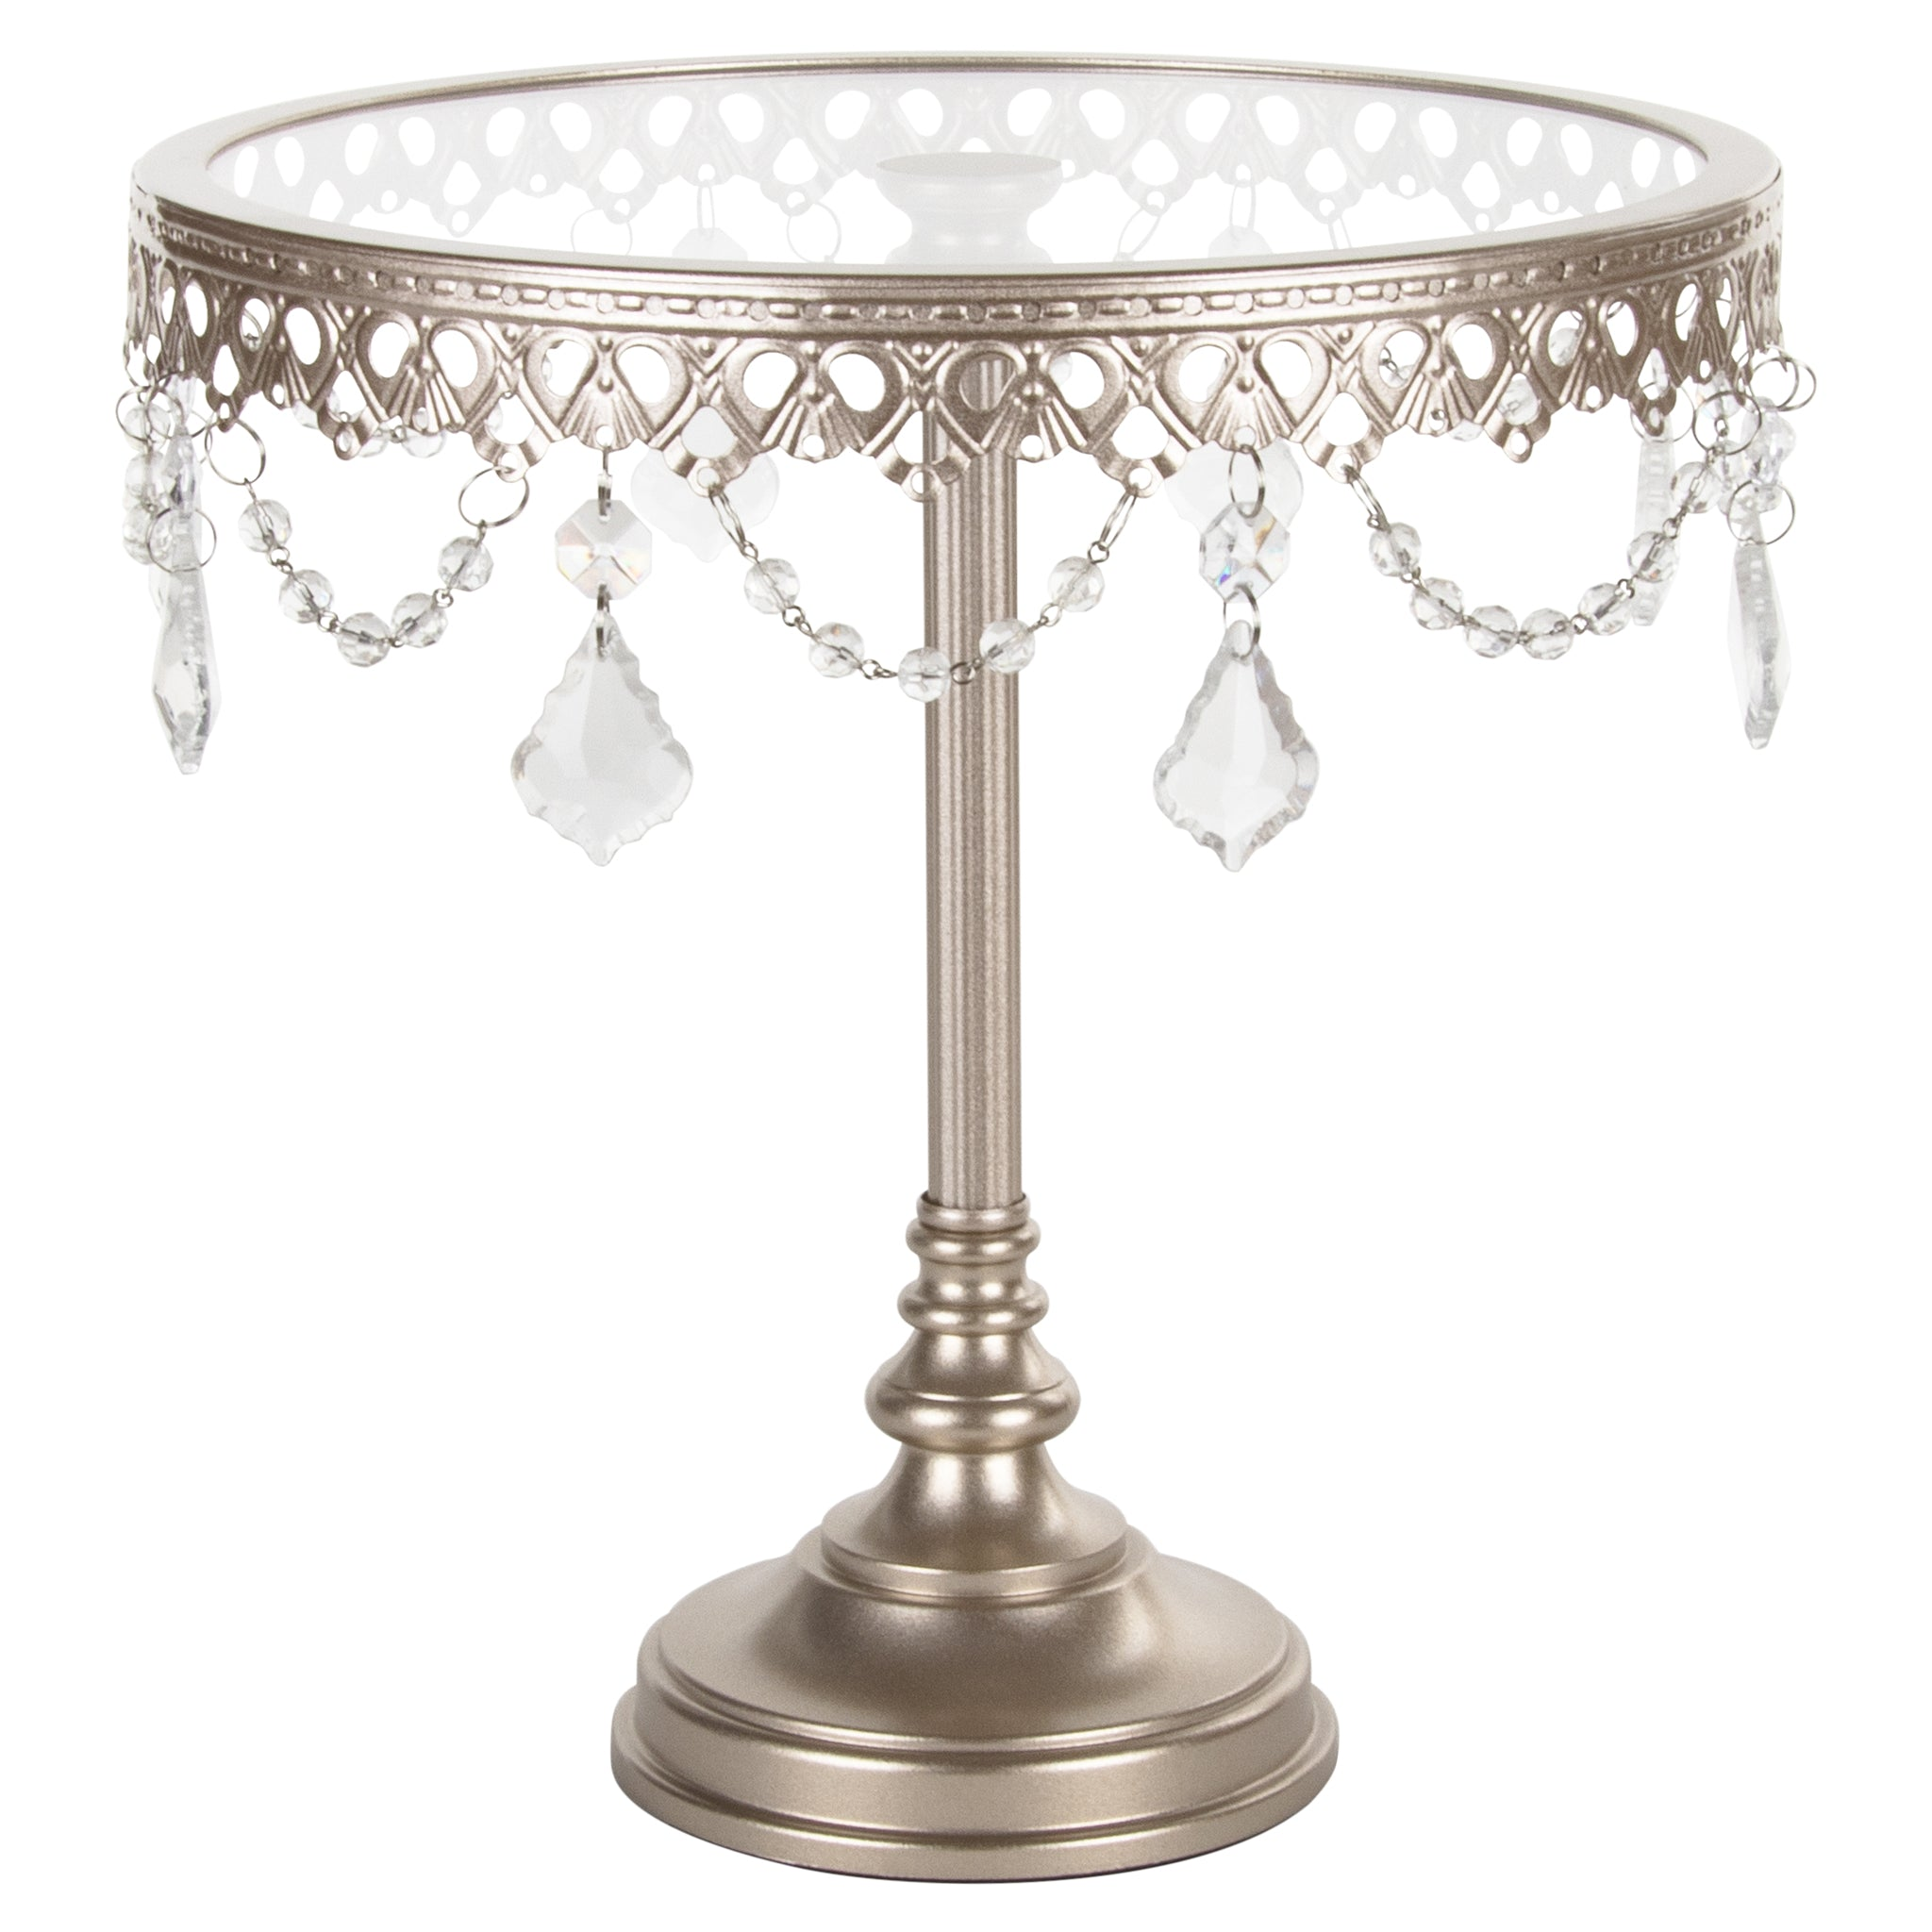 Amalfi Decor 10 Inch Glass-Top Tall Metal Cake Stand with Crystals (Champagne) | Stainless Steel Frame